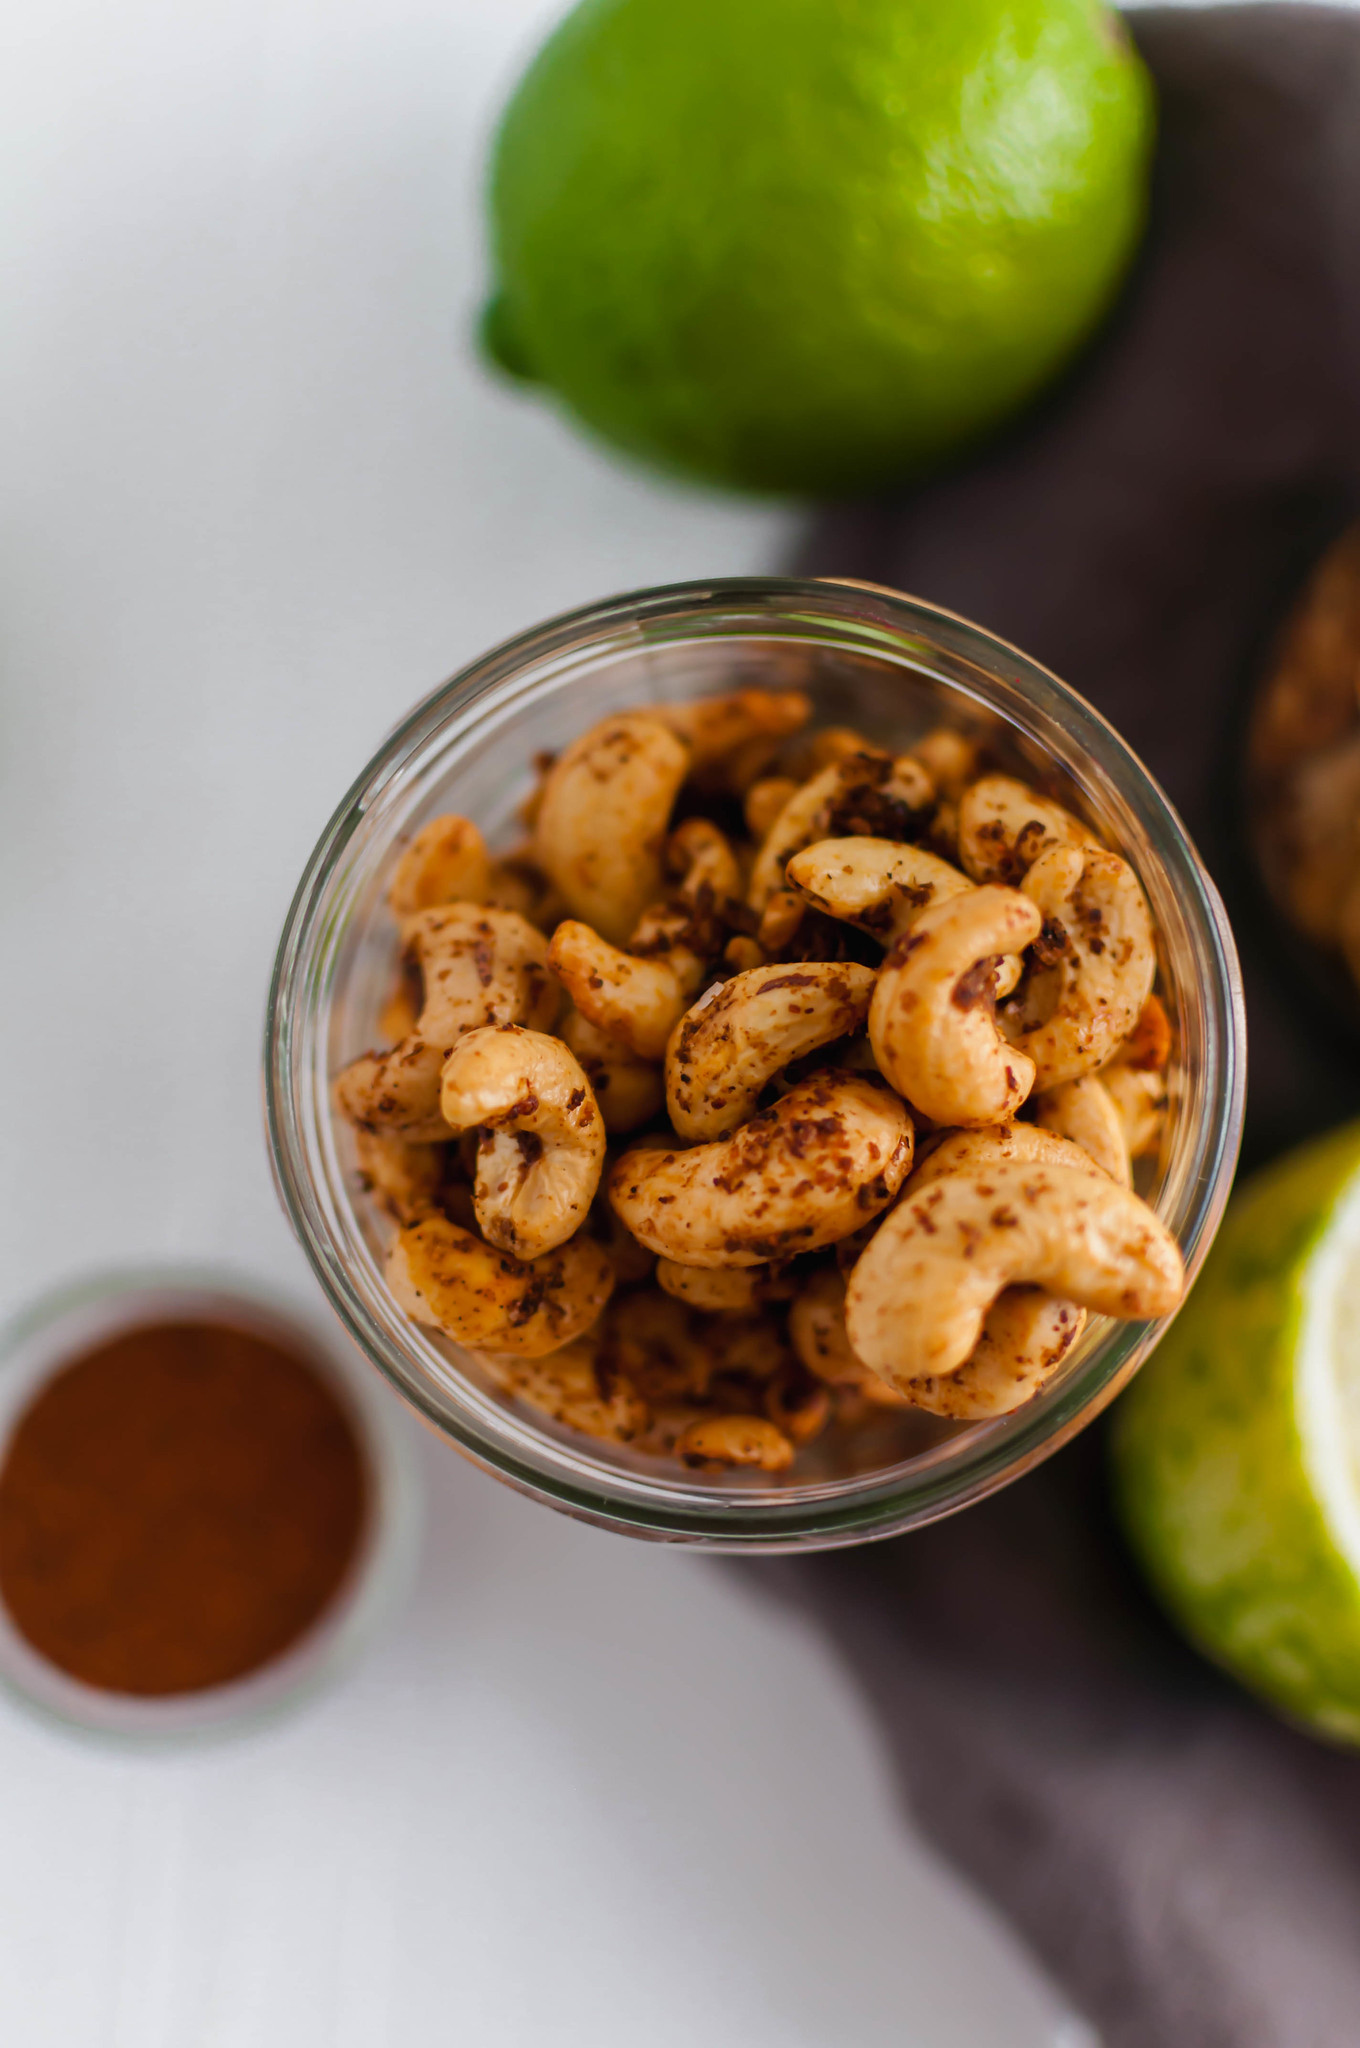 Meet your new snack addiction, Chili Lime Cashews. Spiced with chili powder, fresh lime zest and juice then roasted to crunchy perfection.